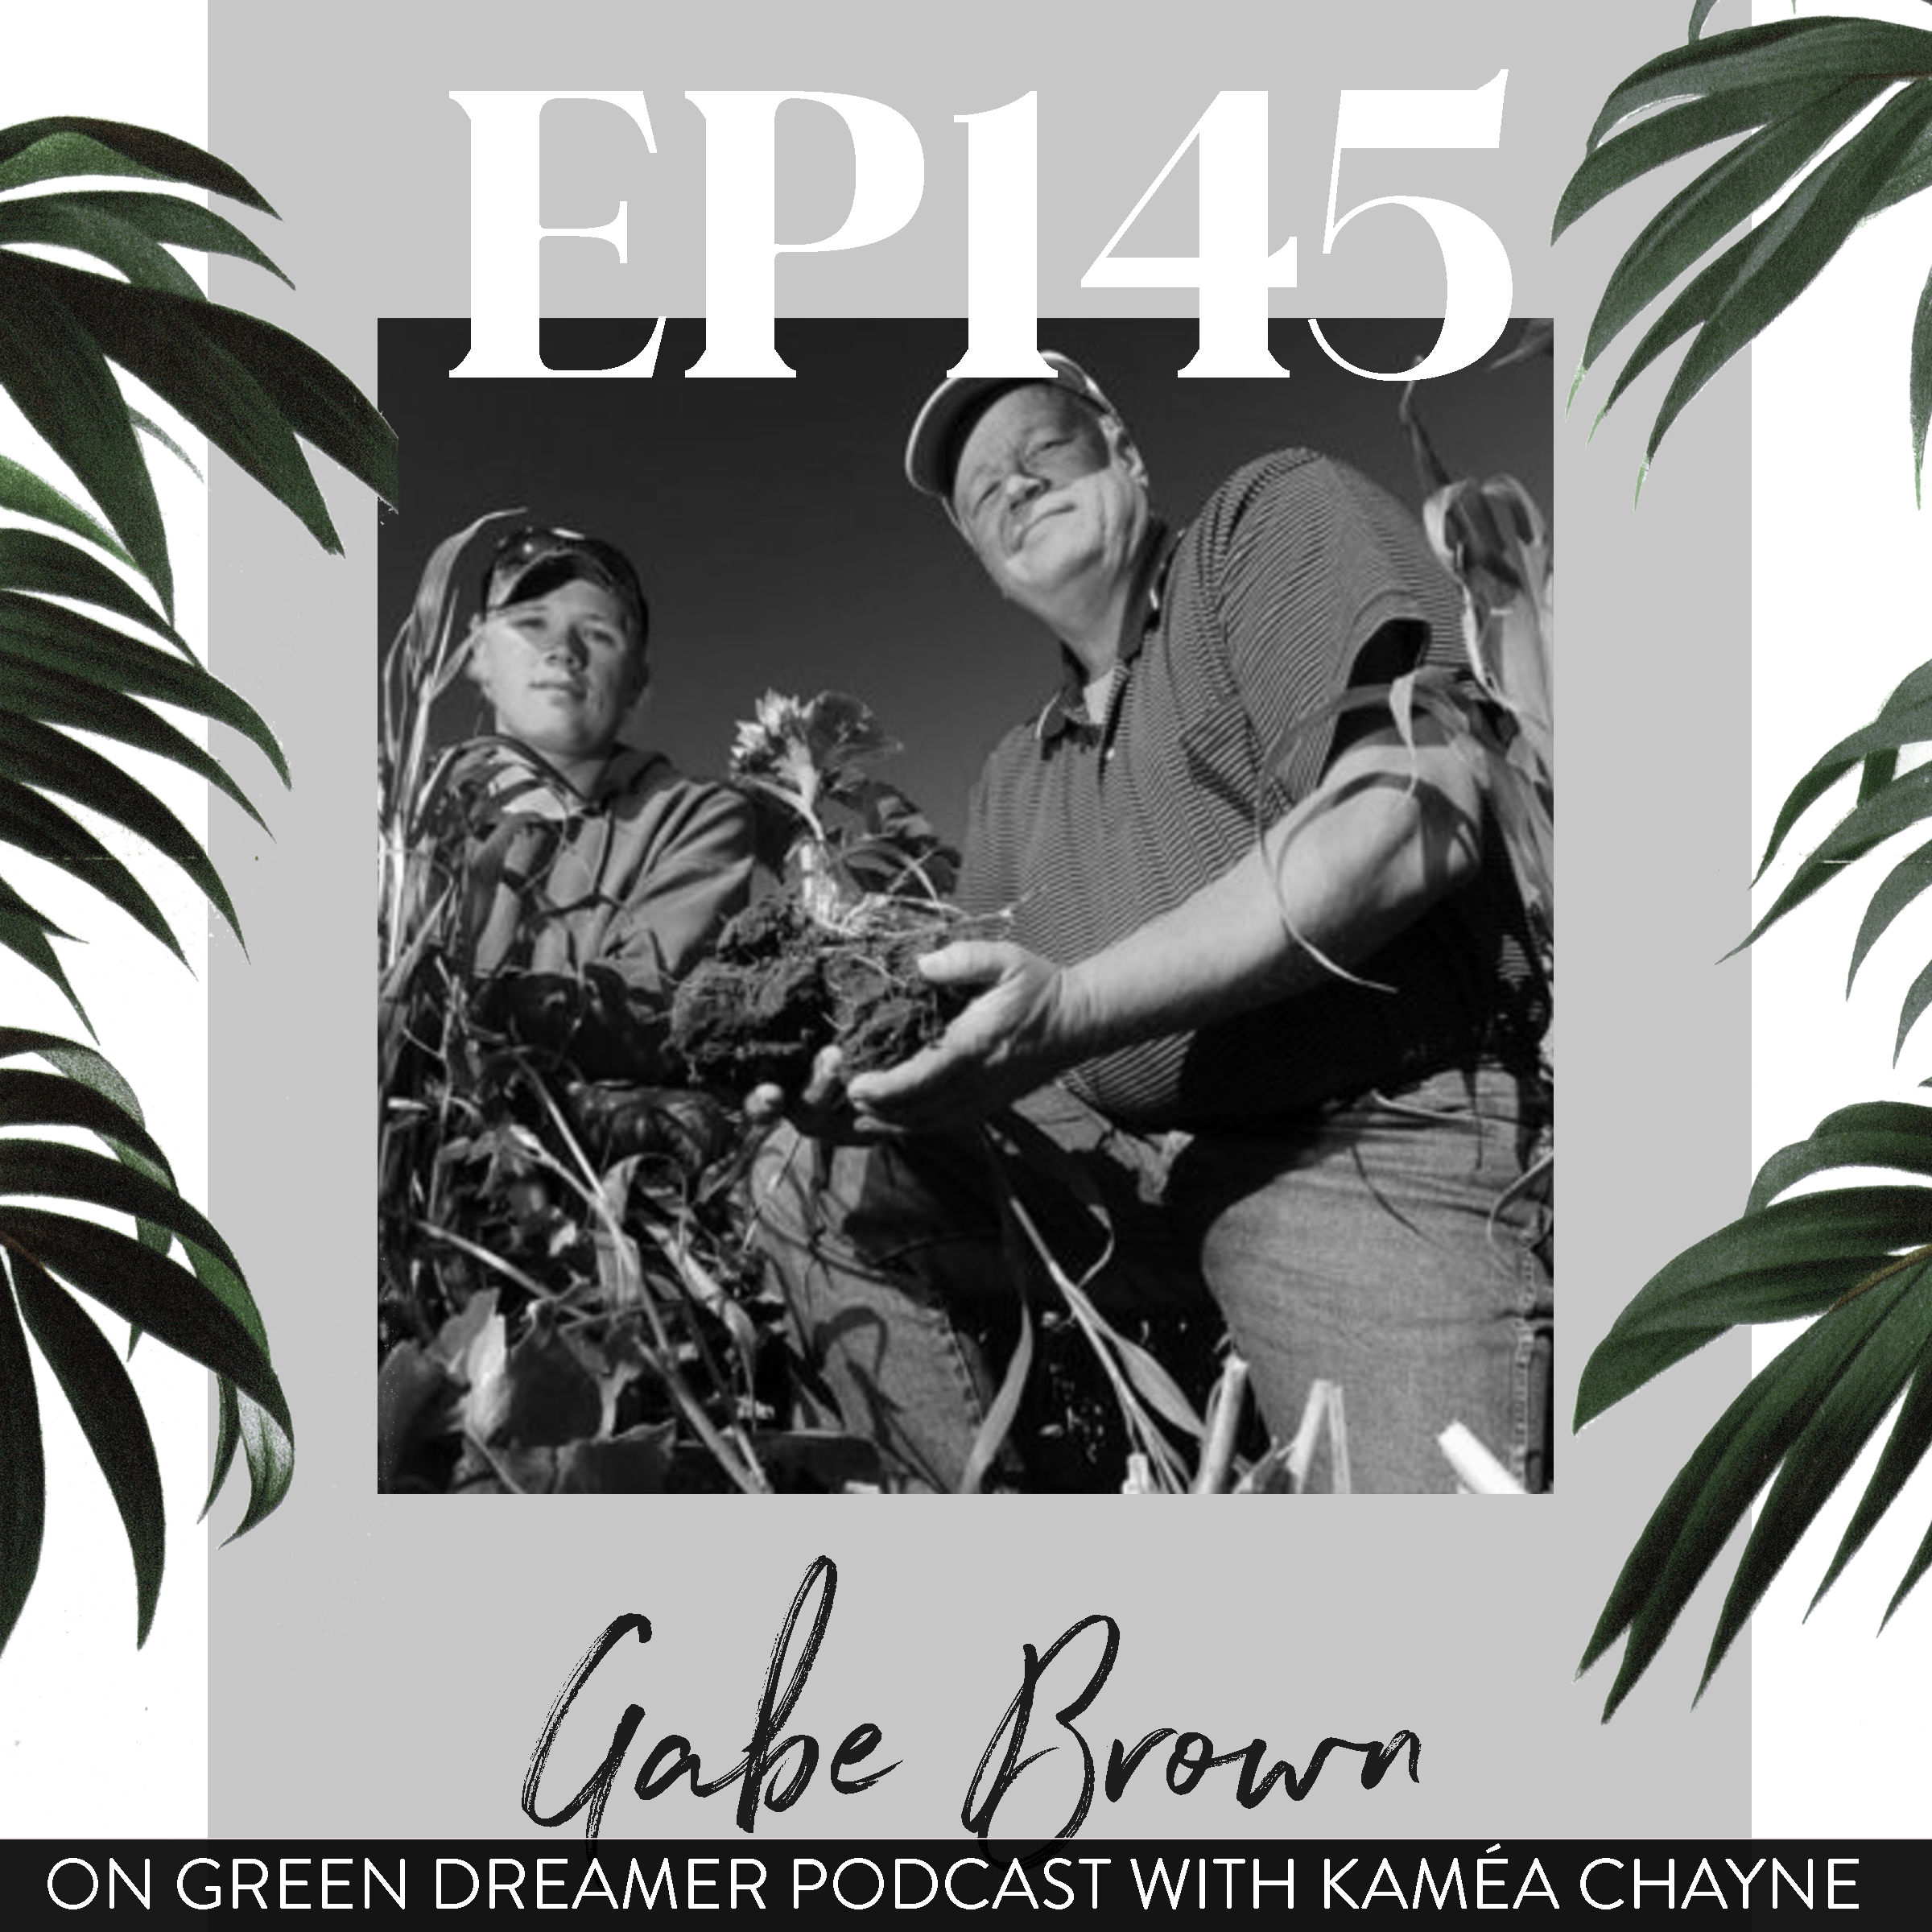 Green Dreamer - Podcast on Environmental Sustainability and Regeneration